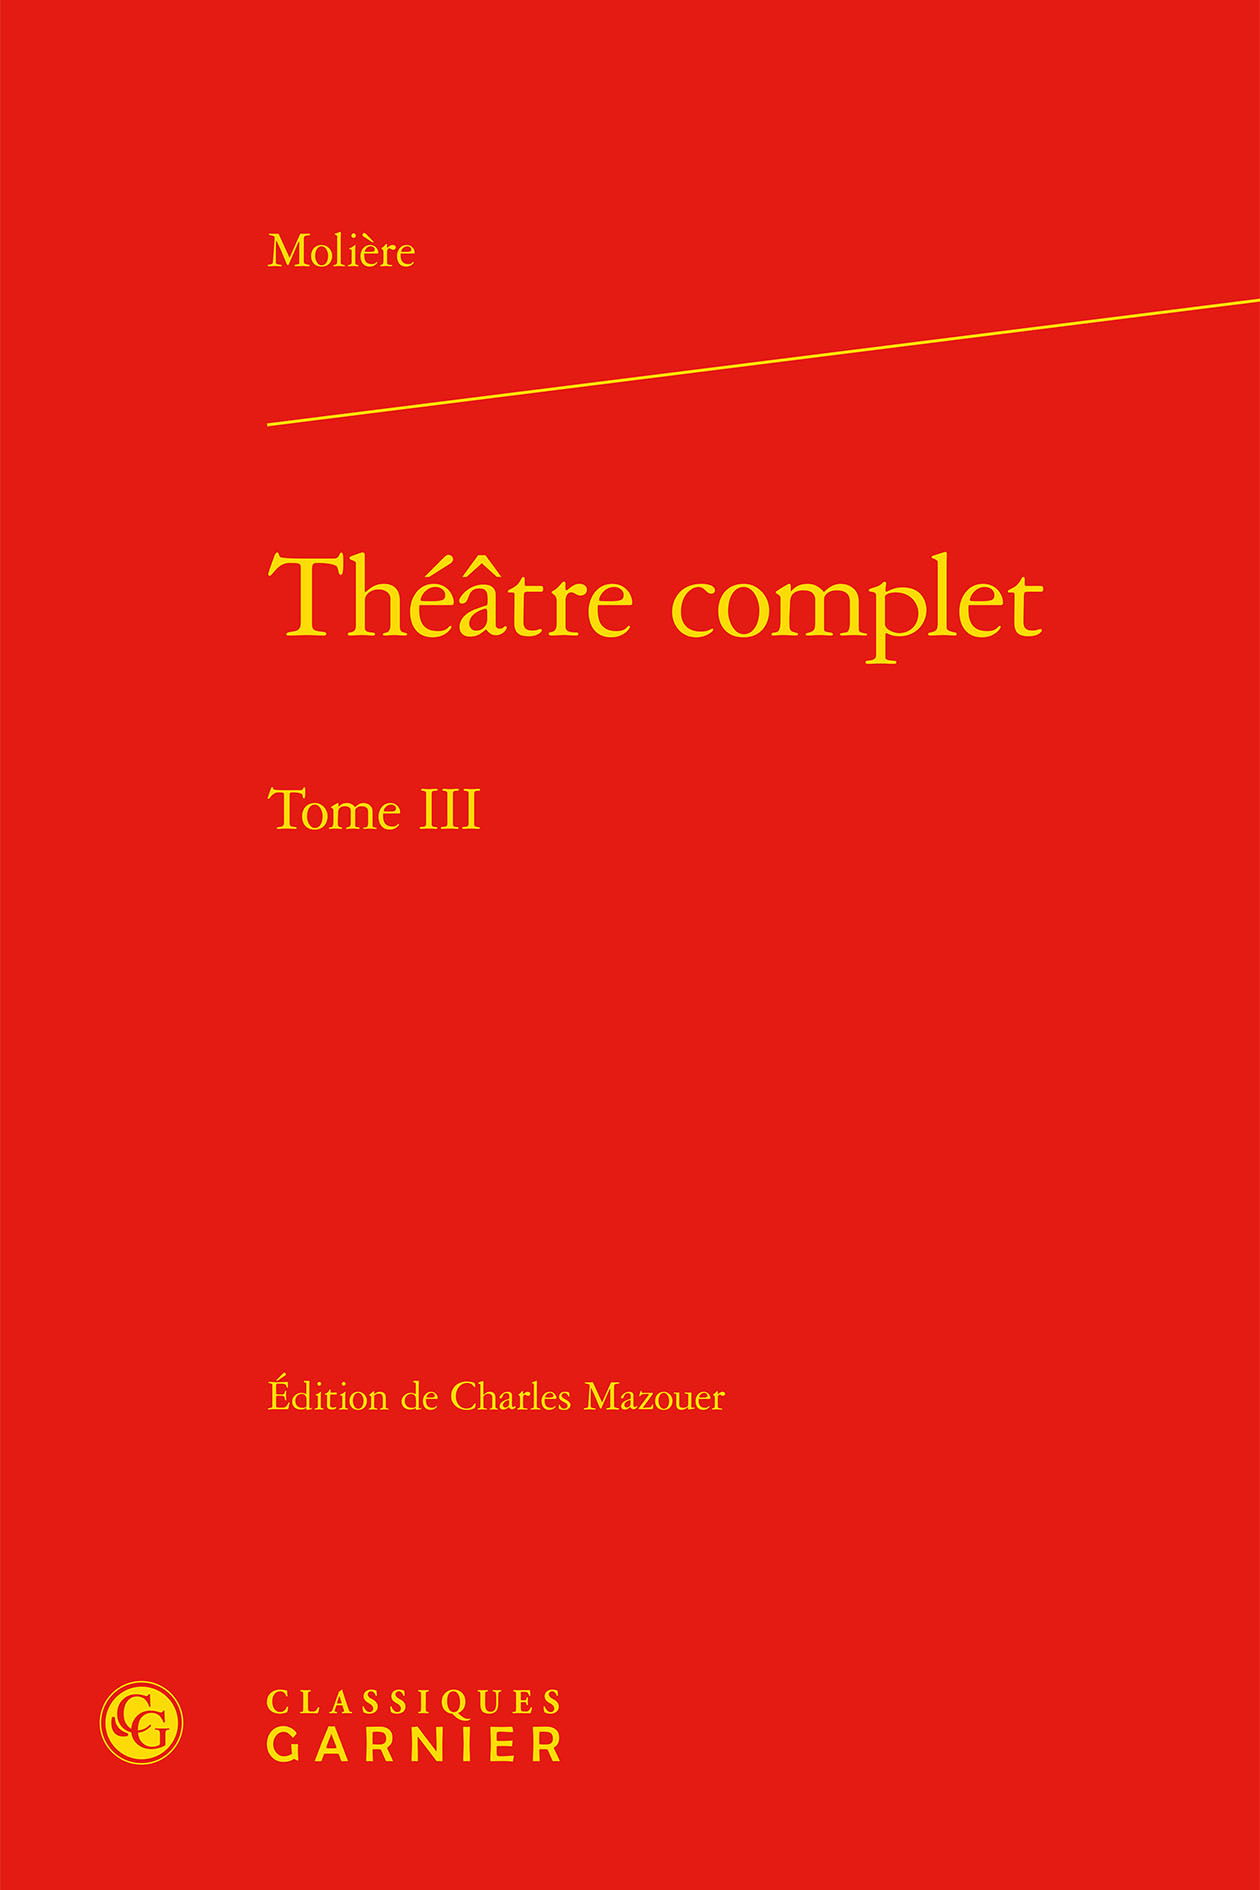 BIBLIOTHEQUE DU THEATRE FRANCAIS - T61 - THEATRE COMPLET - TOME III